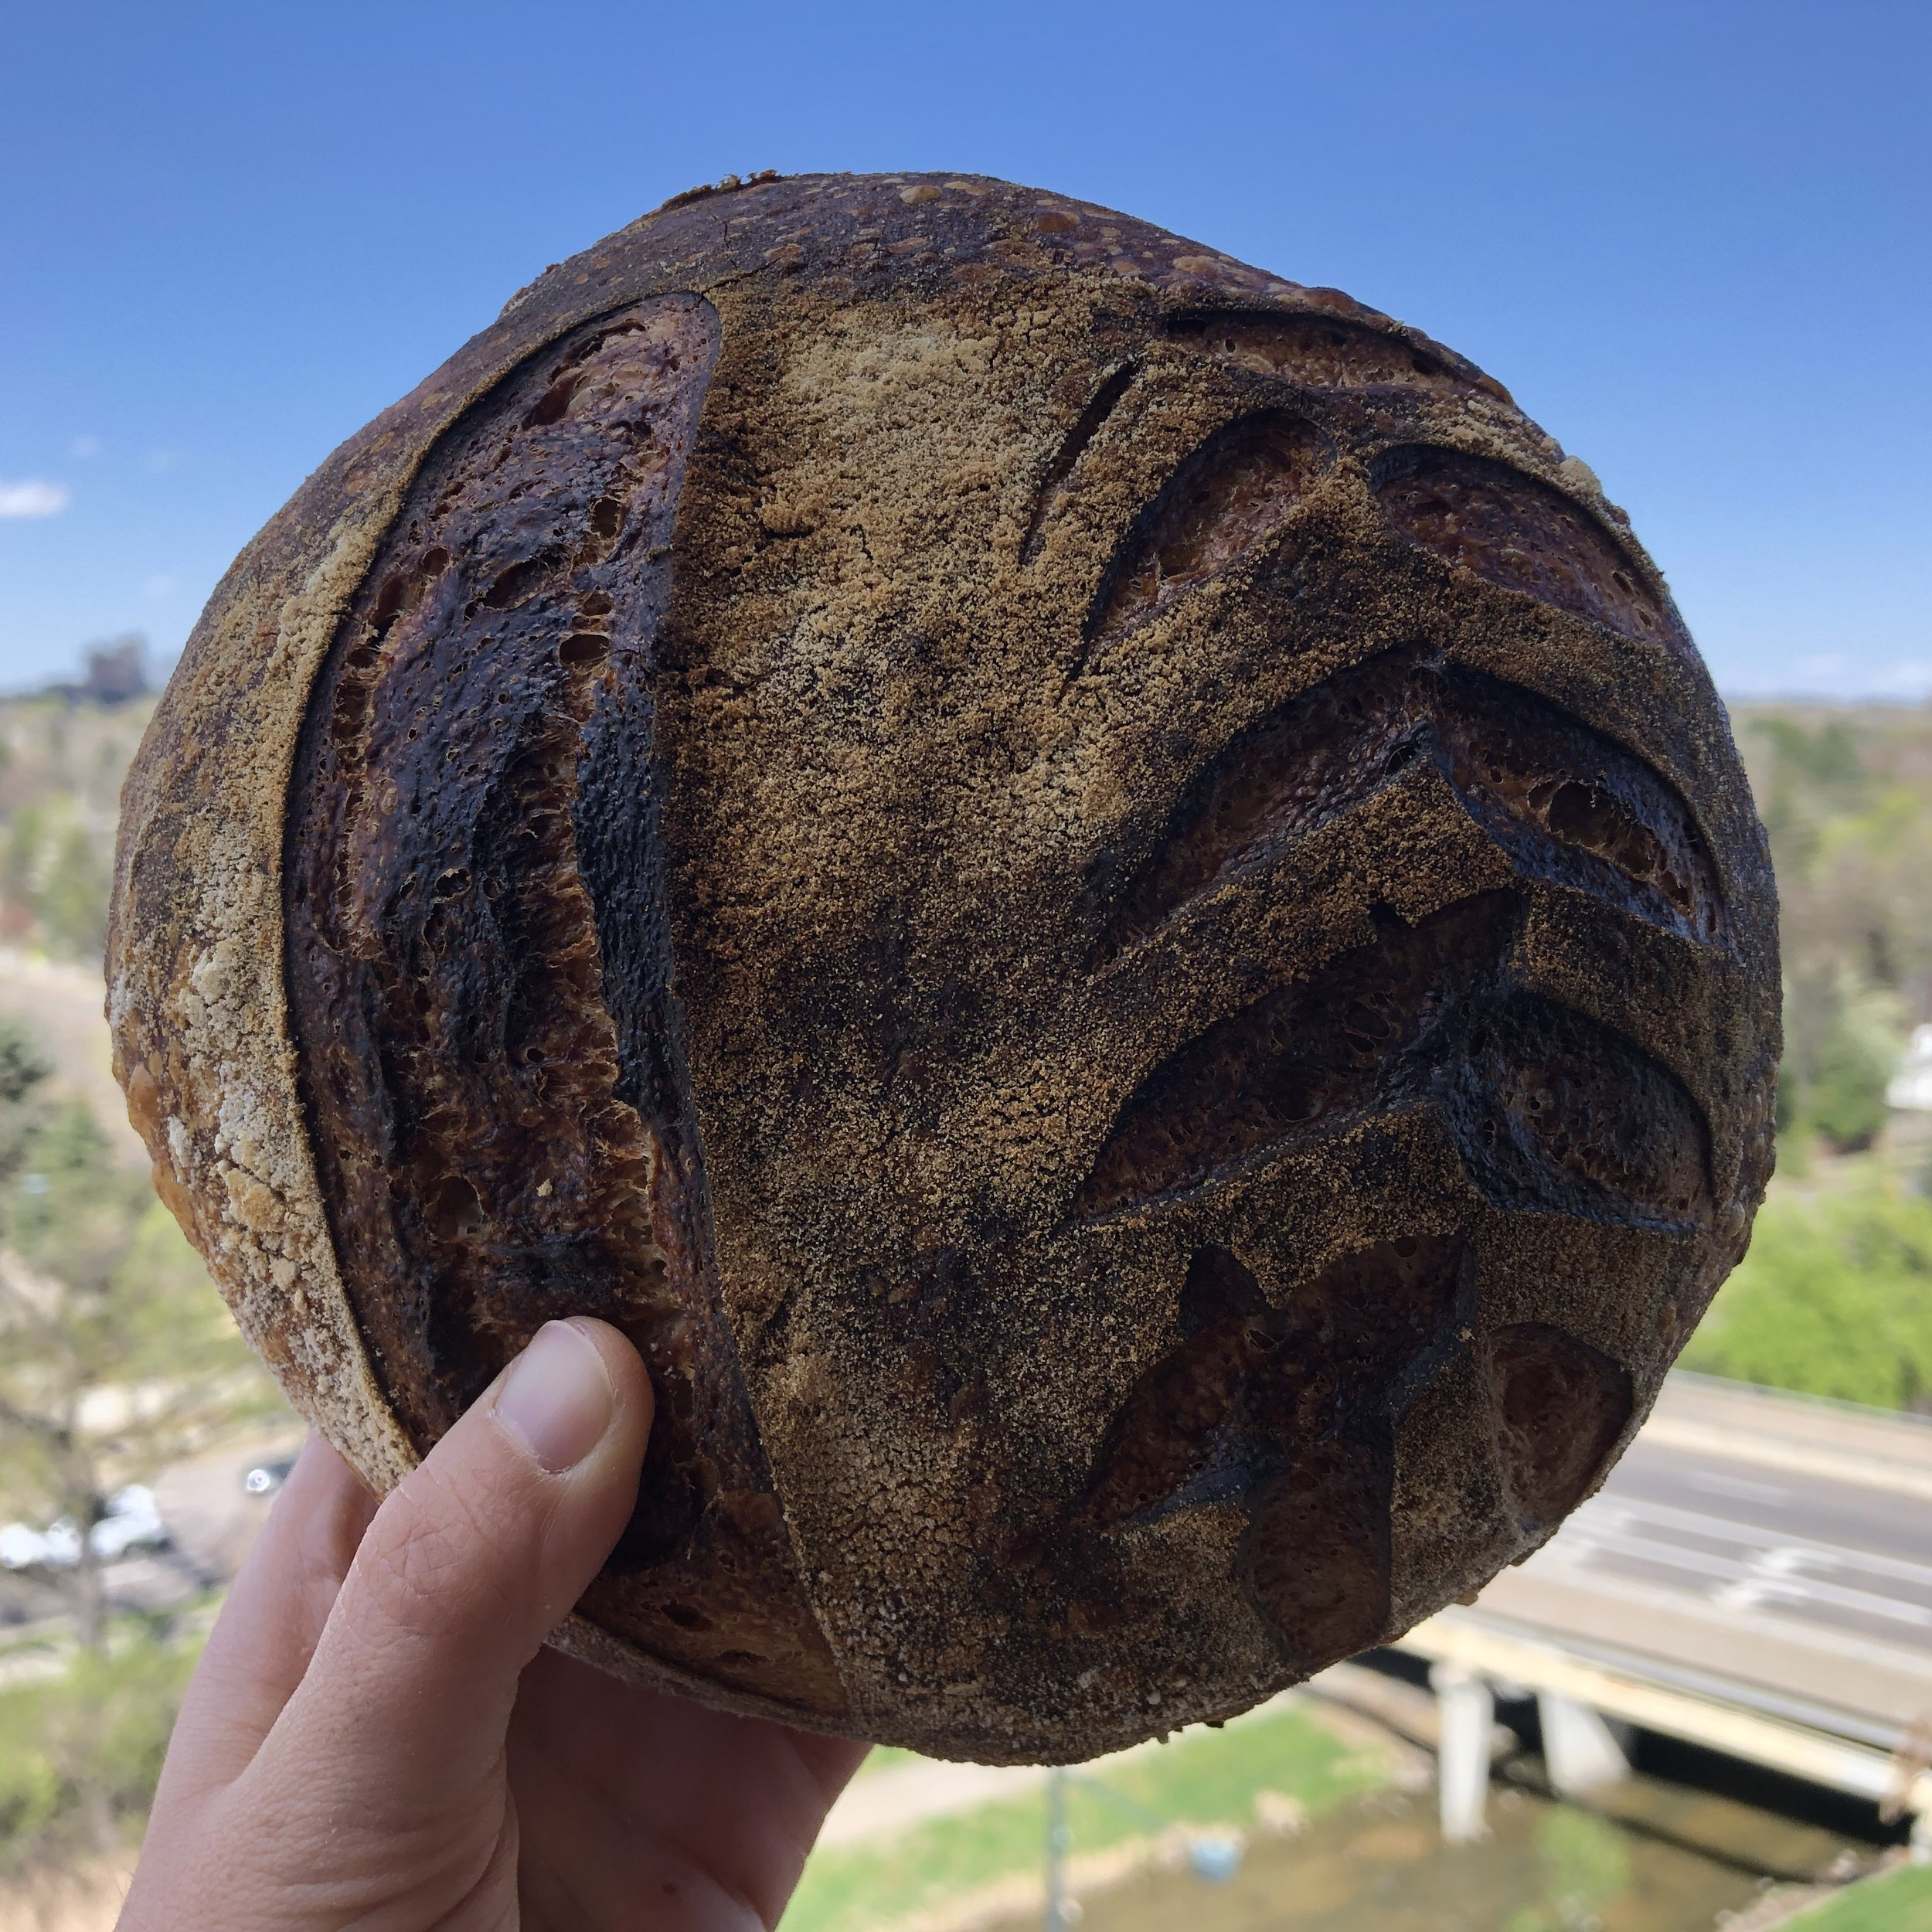 Live in Denver? - Receive weekly sourdough bread or a consultation